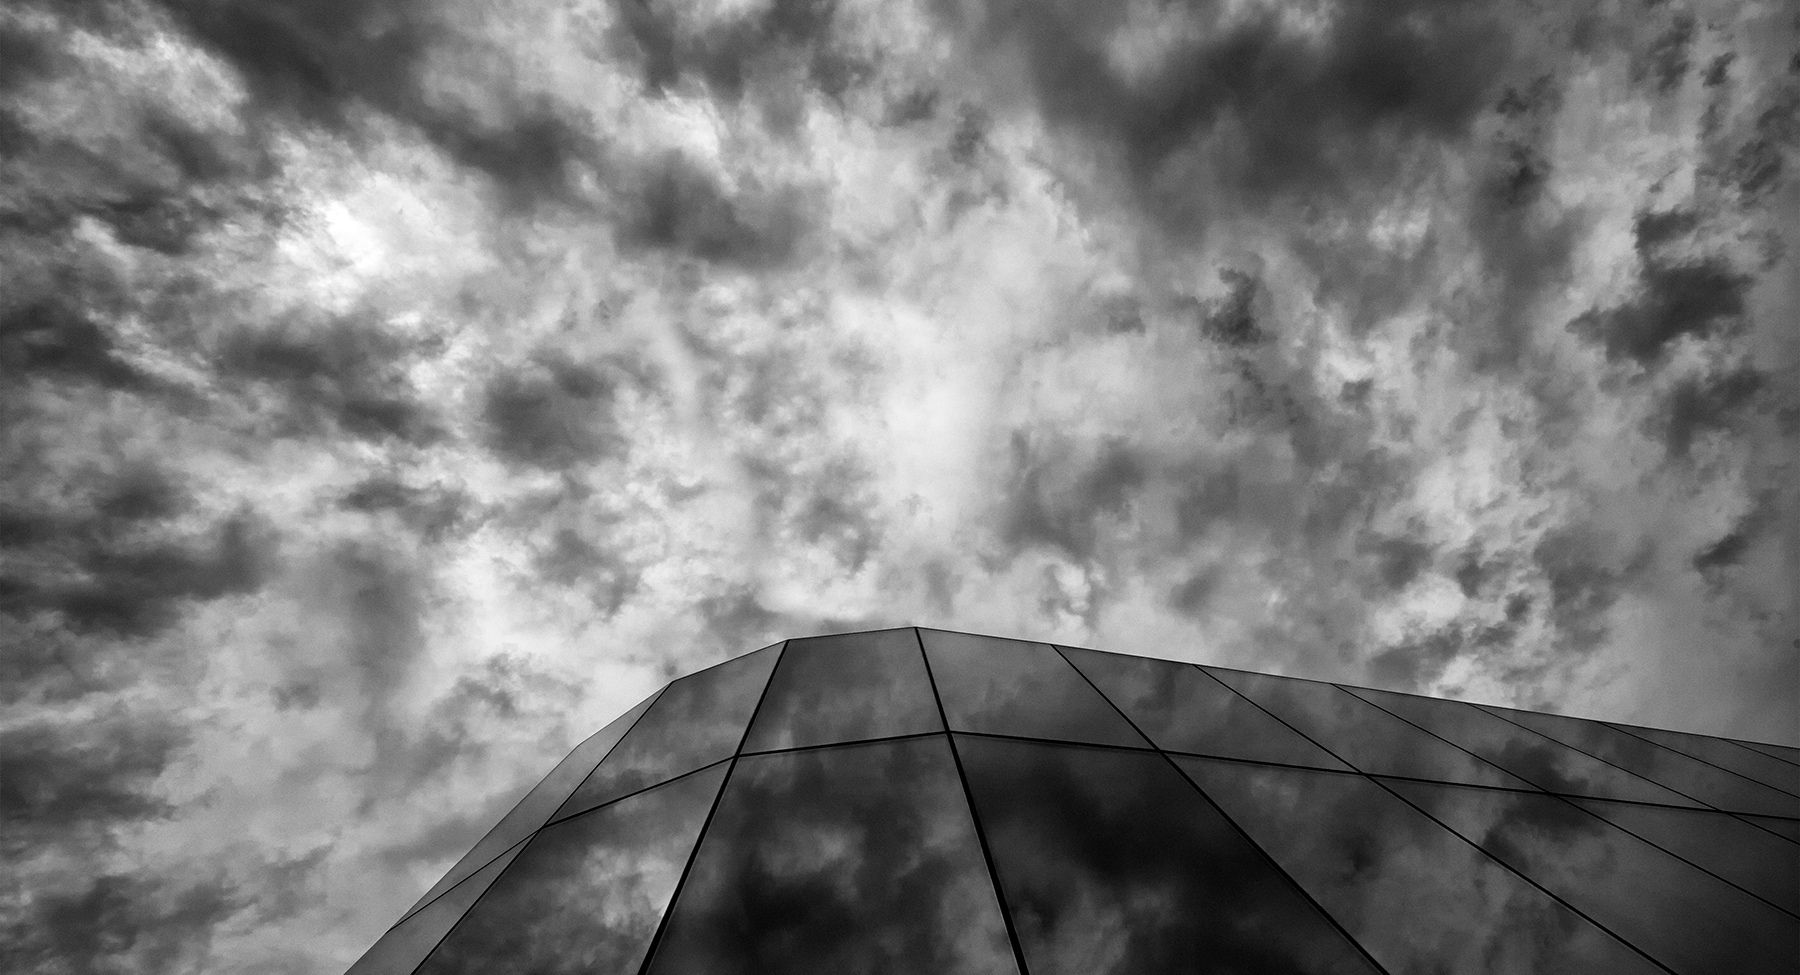 1glassskyreflections_8738bwlay_18x975